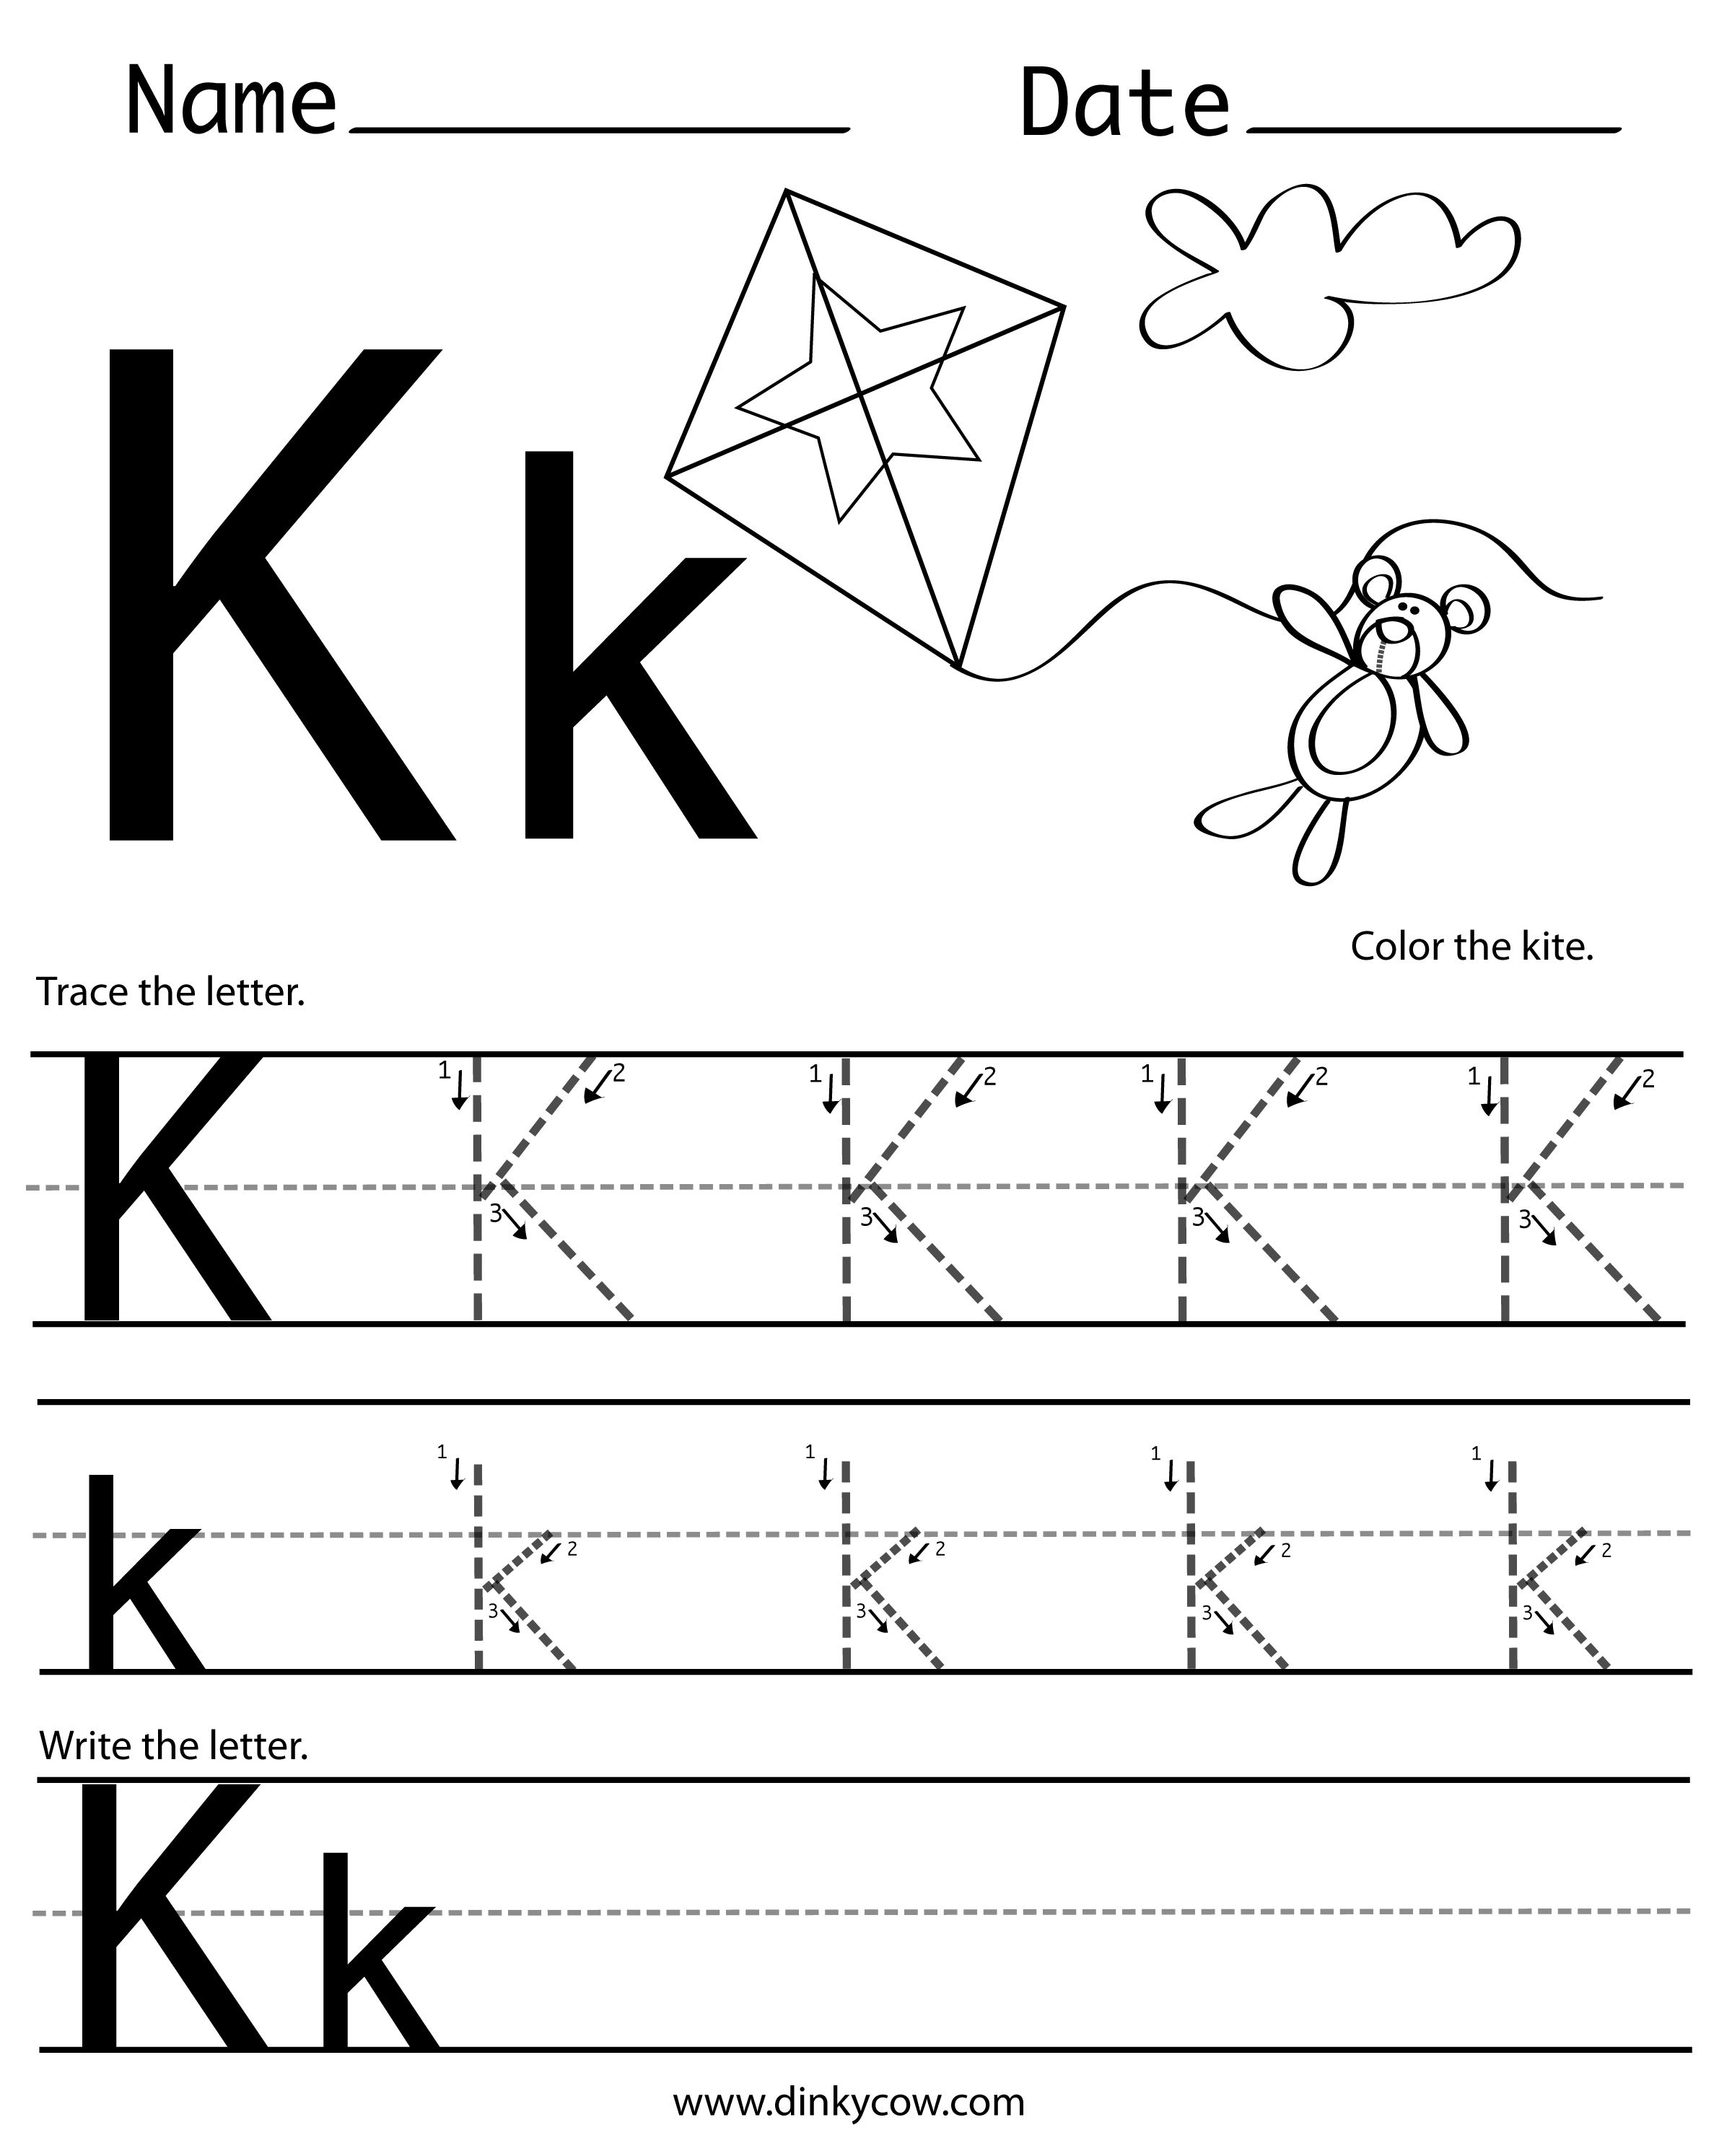 pin by mareese on tracing letter b worksheets free handwriting worksheets preschool letter b. Black Bedroom Furniture Sets. Home Design Ideas